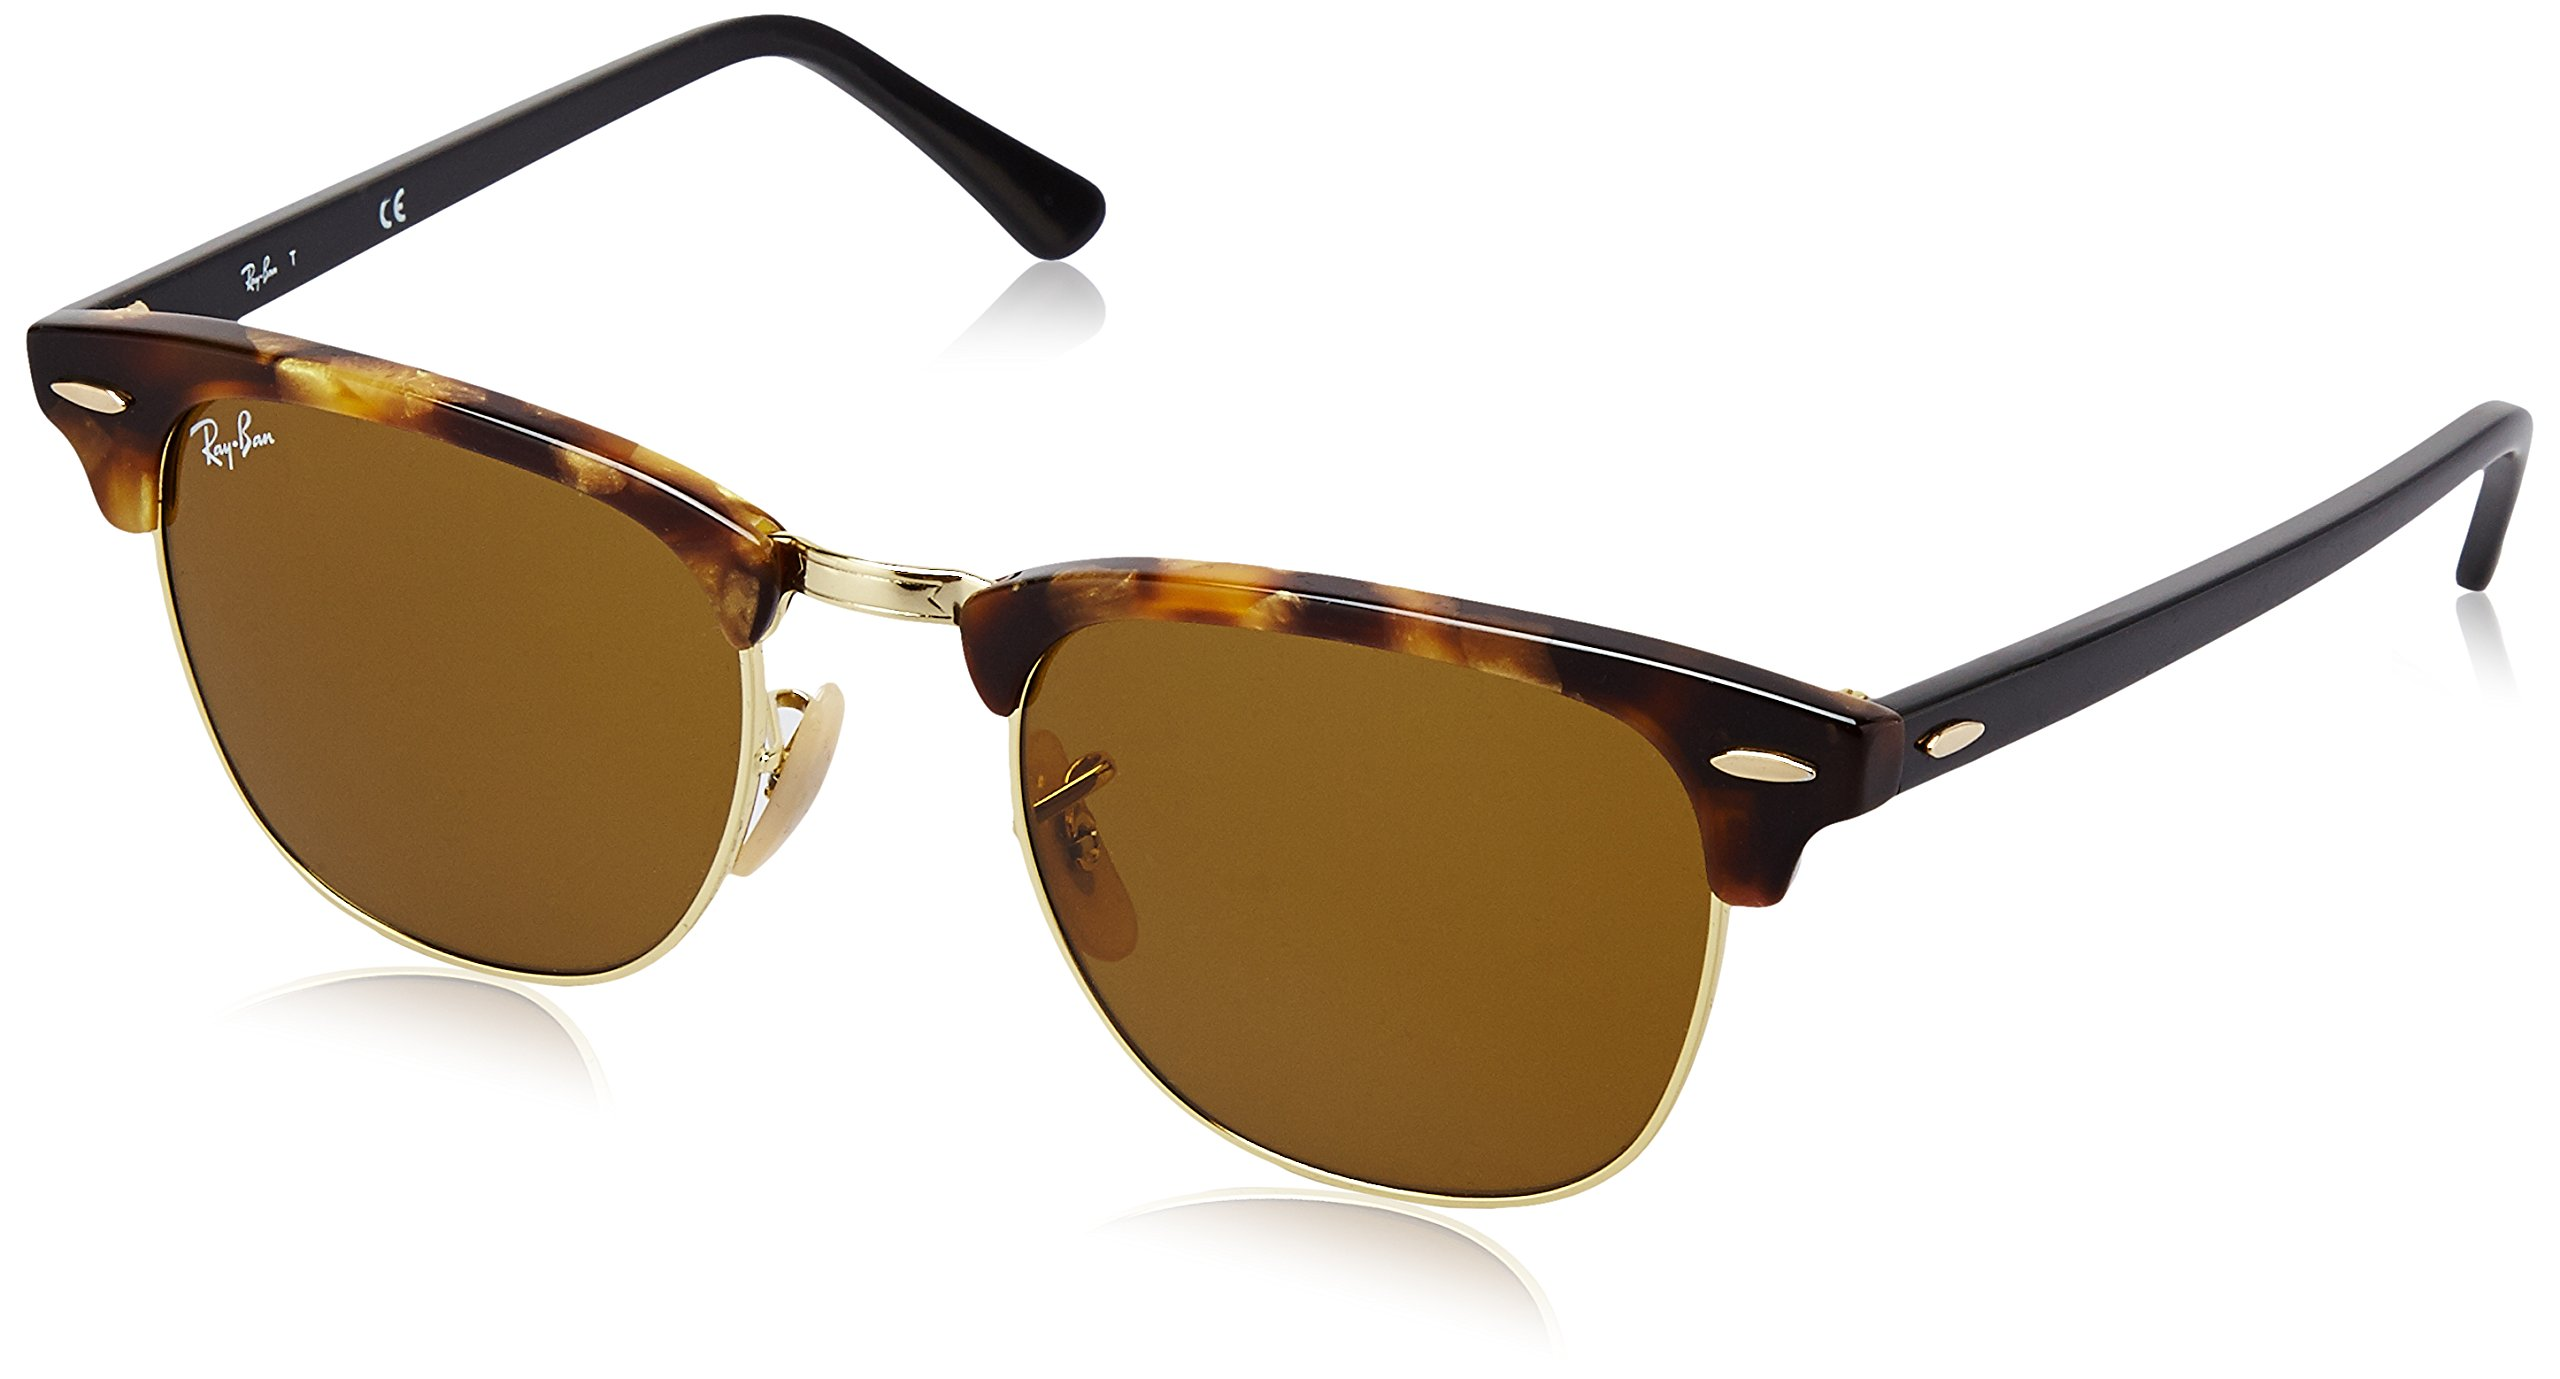 RAY-BAN RB3016 Clubmaster Square Sunglasses, Spotted Brown Havana/Brown, 49 mm by RAY-BAN